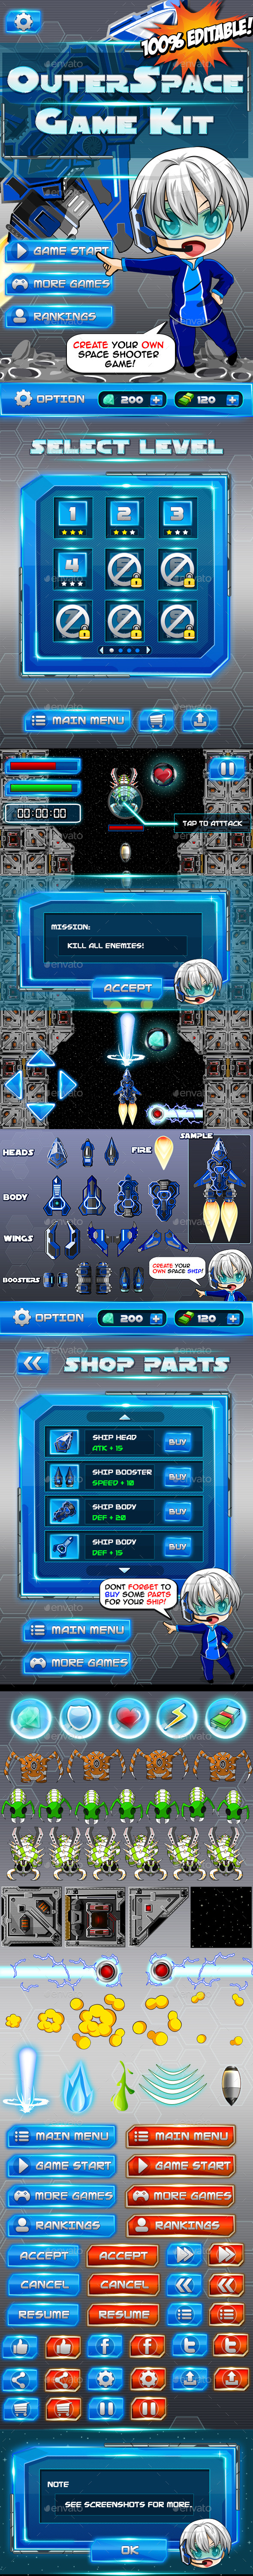 Outer Space Game Kit  - Game Kits Game Assets